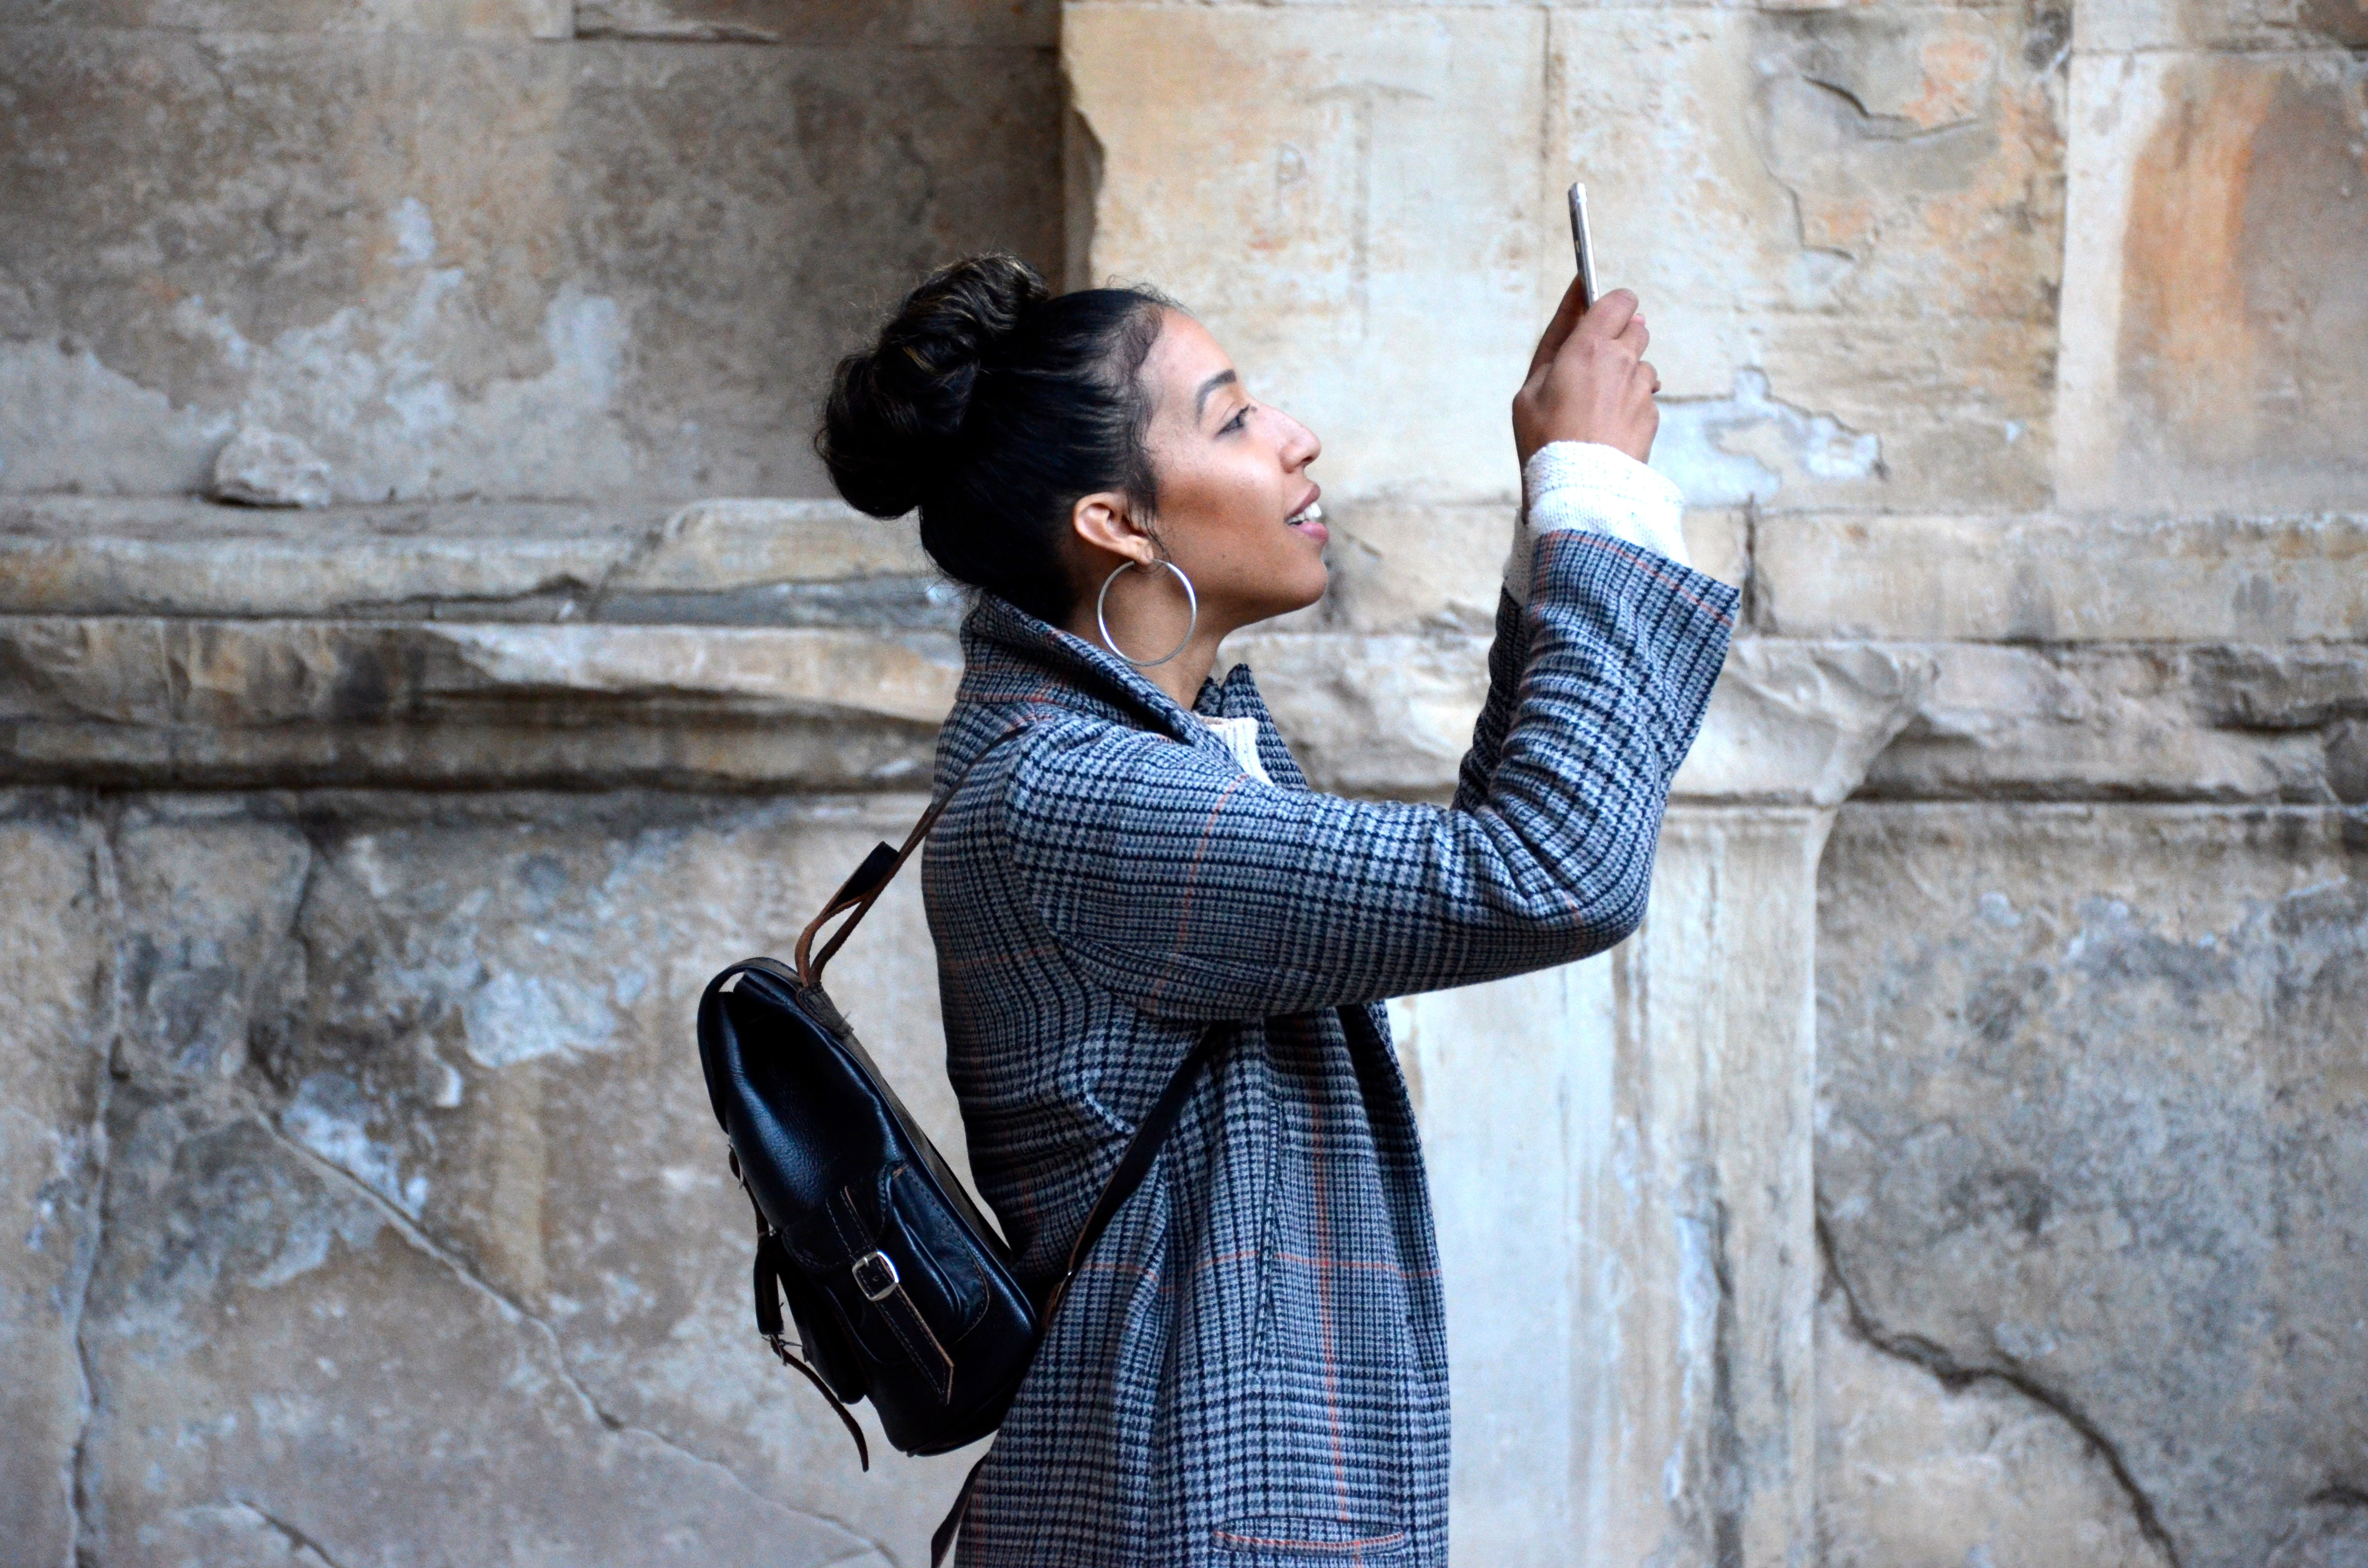 A female tourist smiling while taking a photograph with a smartphone